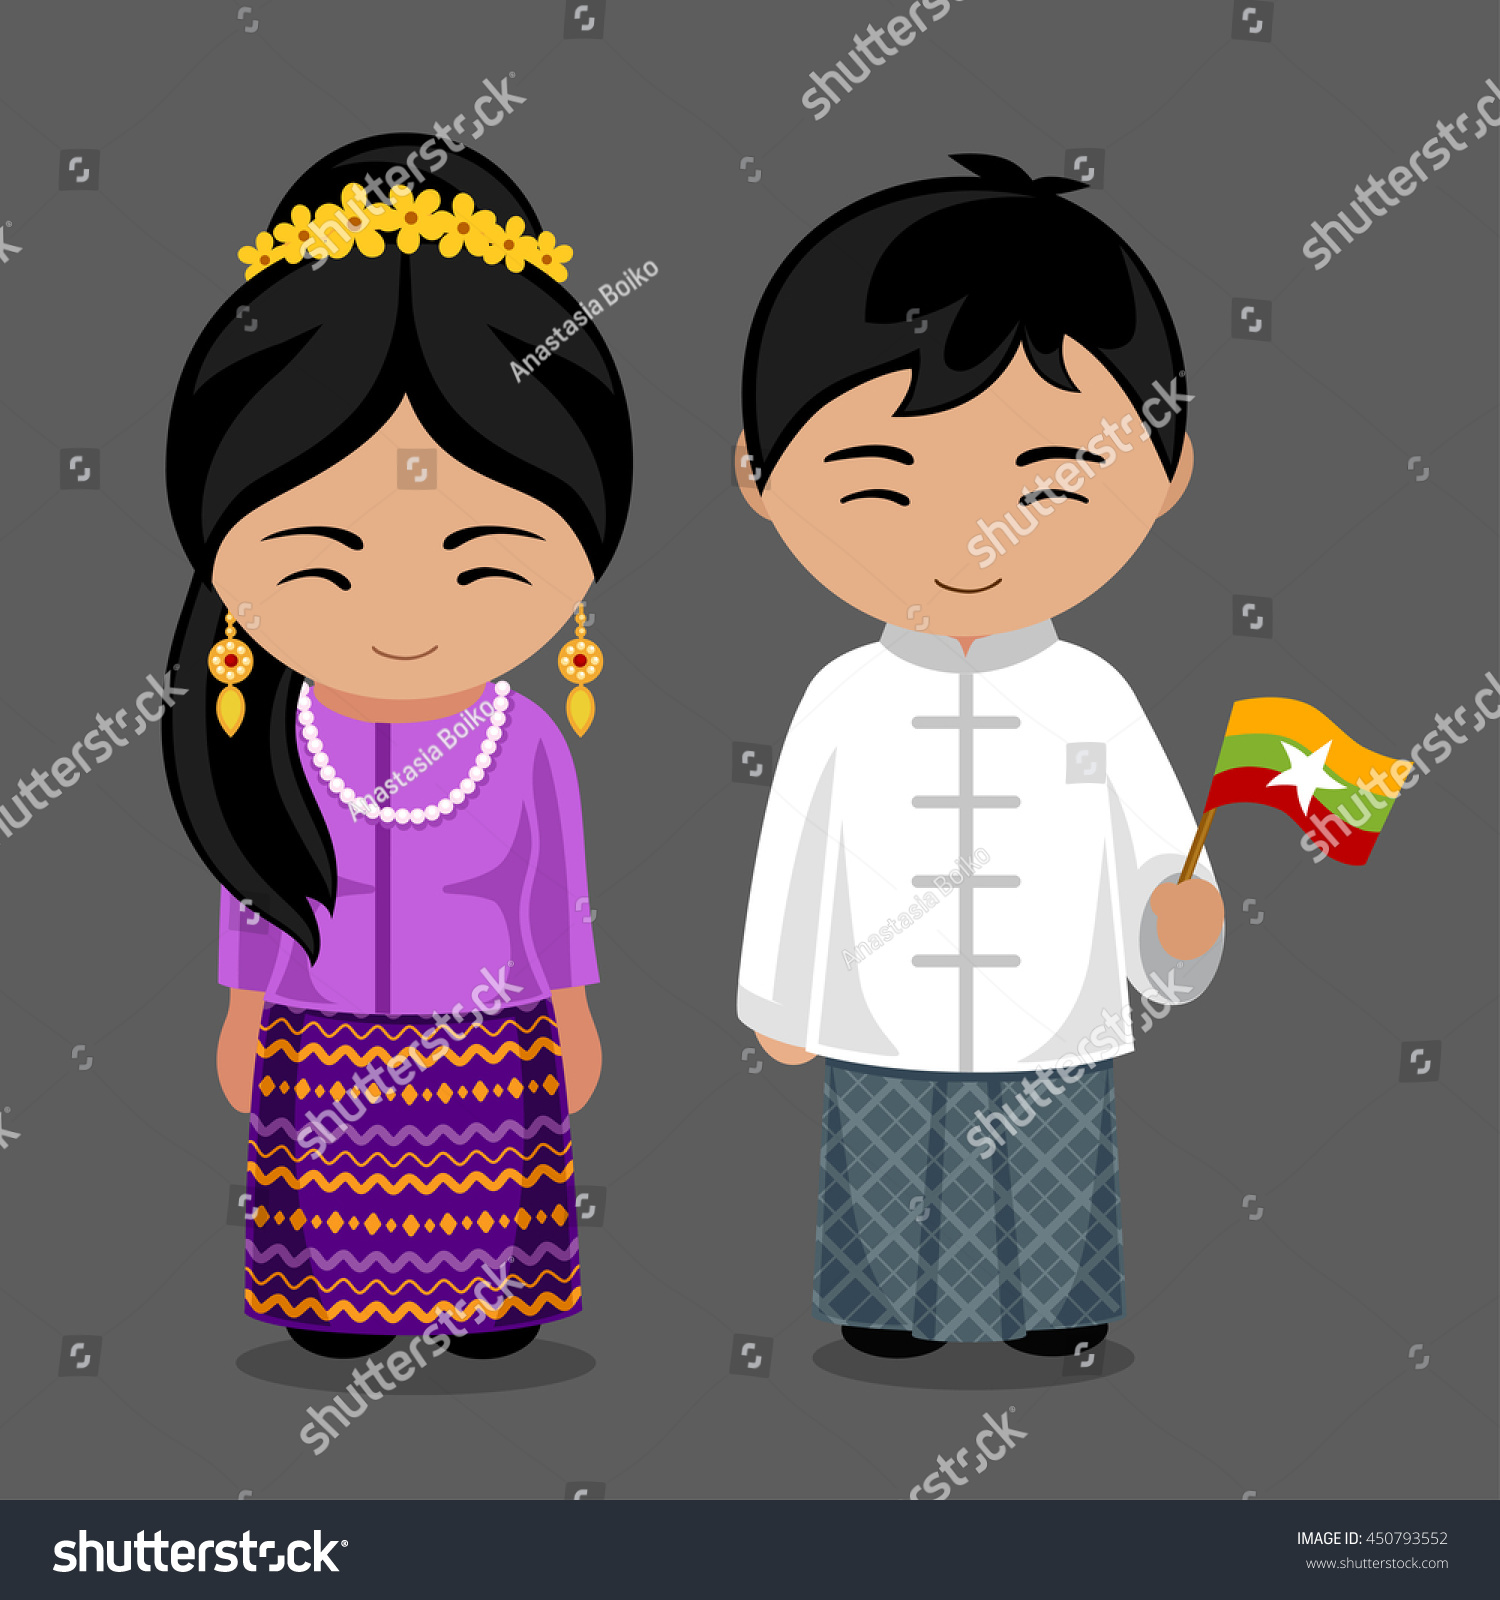 Welcome World League Of Beauty And Fashion Official Web: Burmese National Dress Flag Man Woman Stock Vector